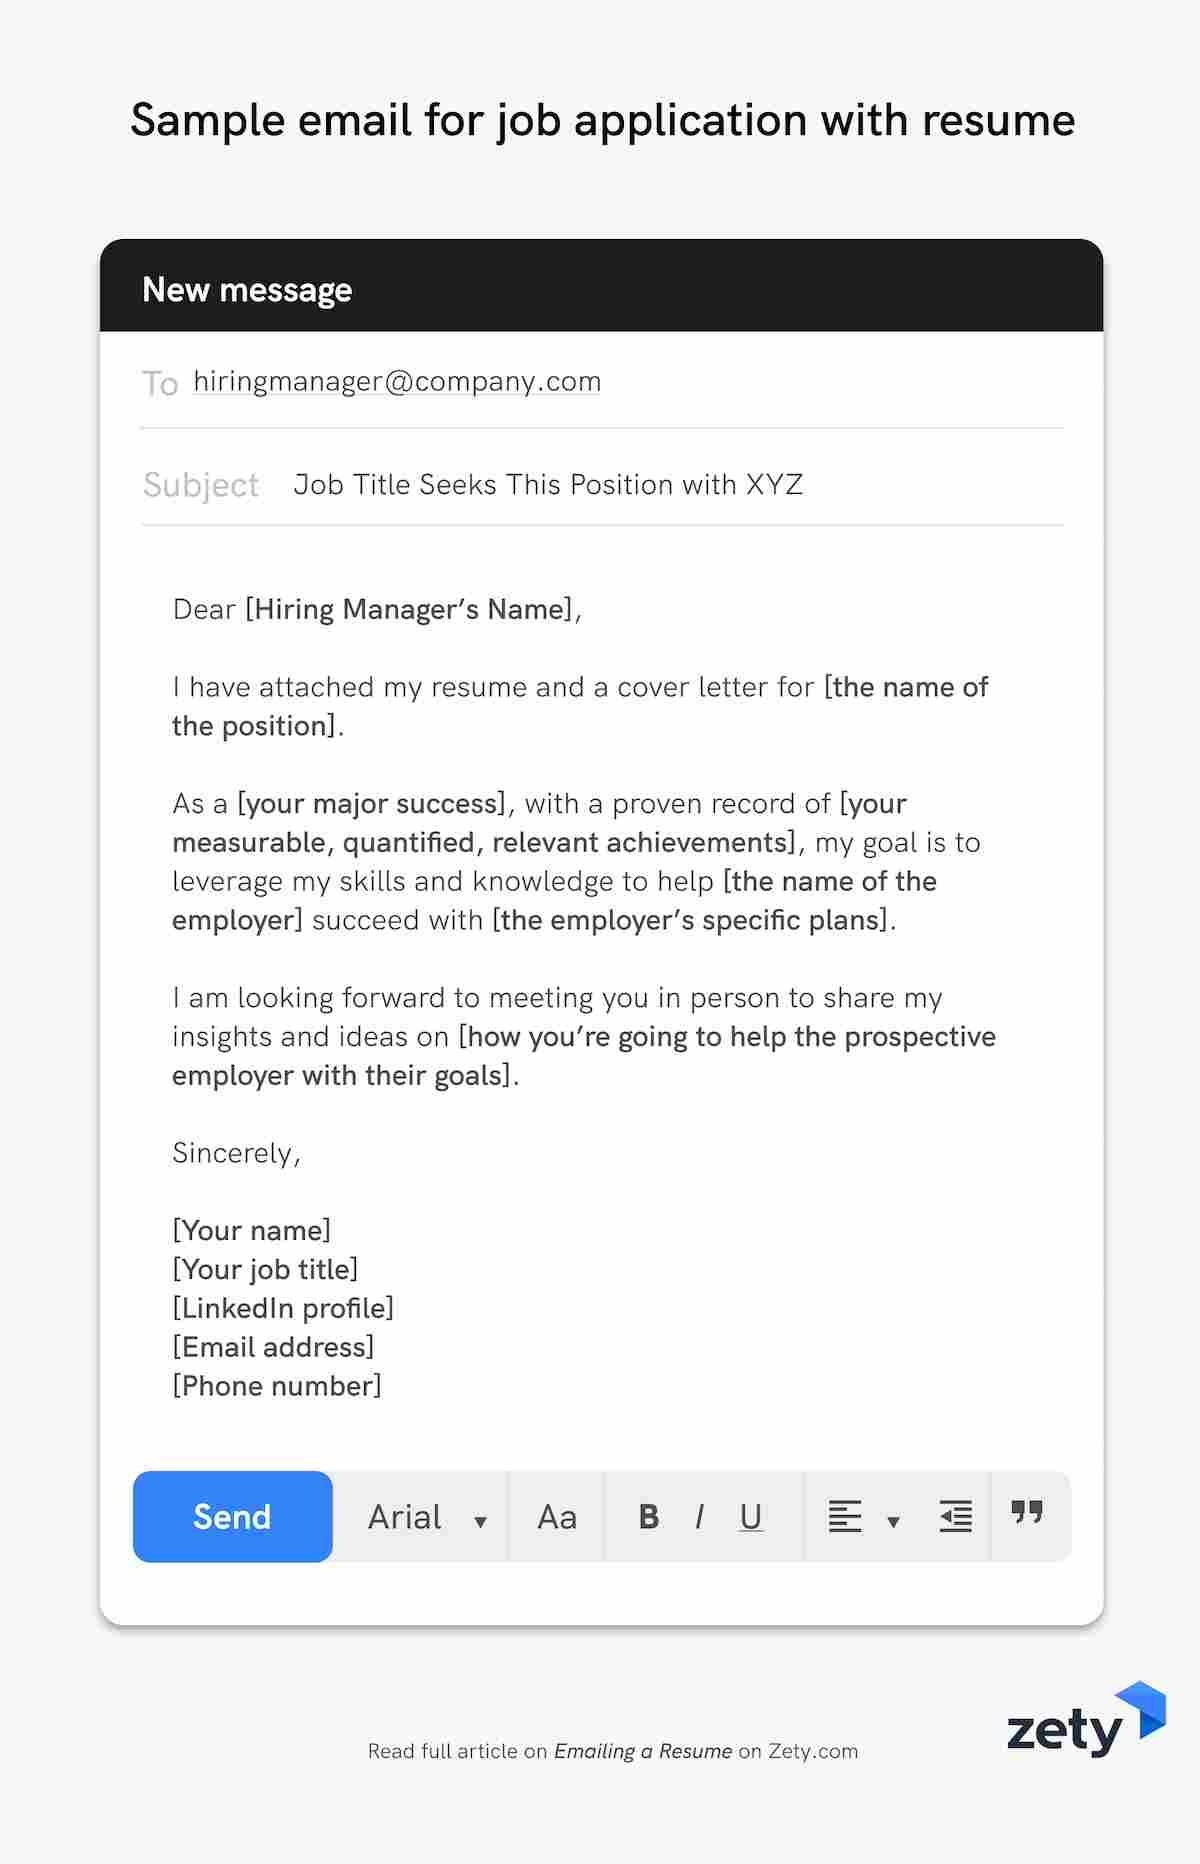 emailing resume job application email samples for submission sample with skill set good Resume Email For Resume Submission Samples